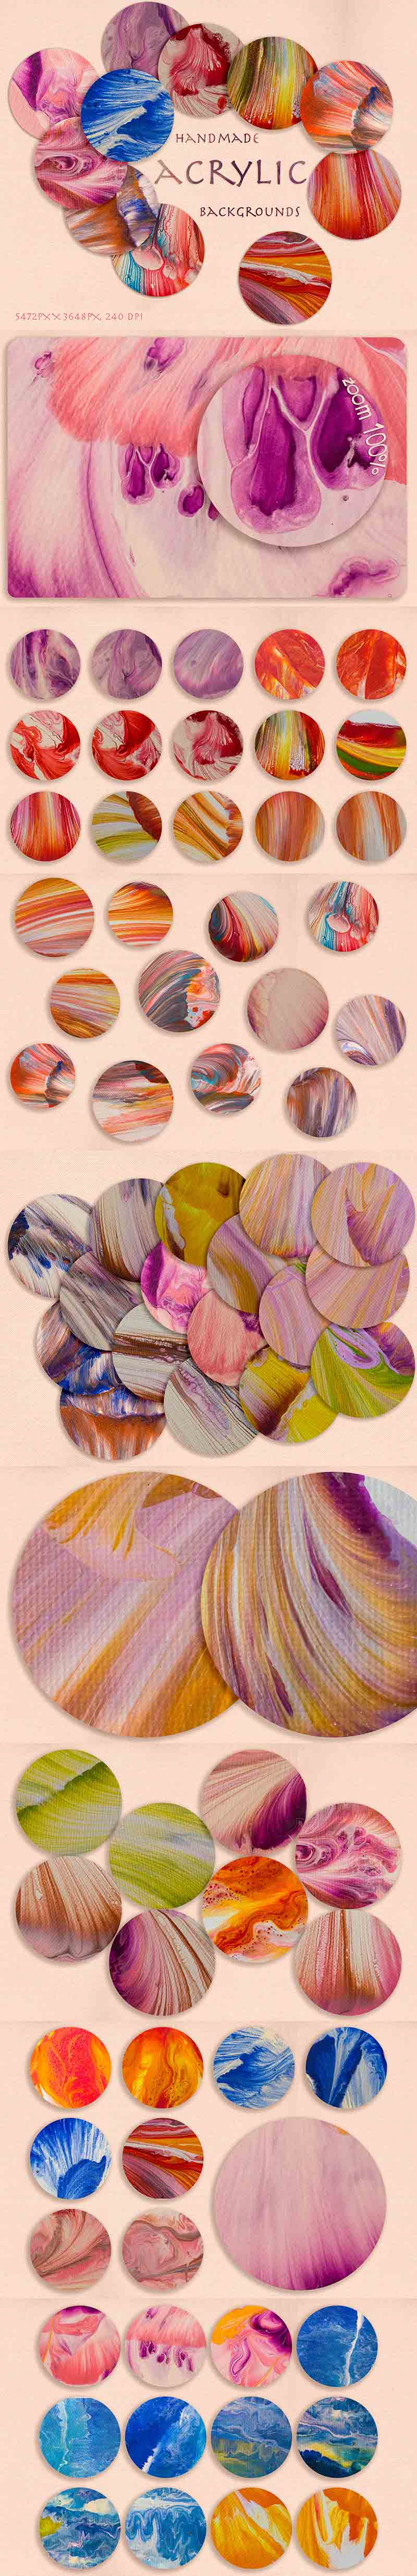 Splash Creative Bundle- 75 Handmade Acrylics Backgrounds